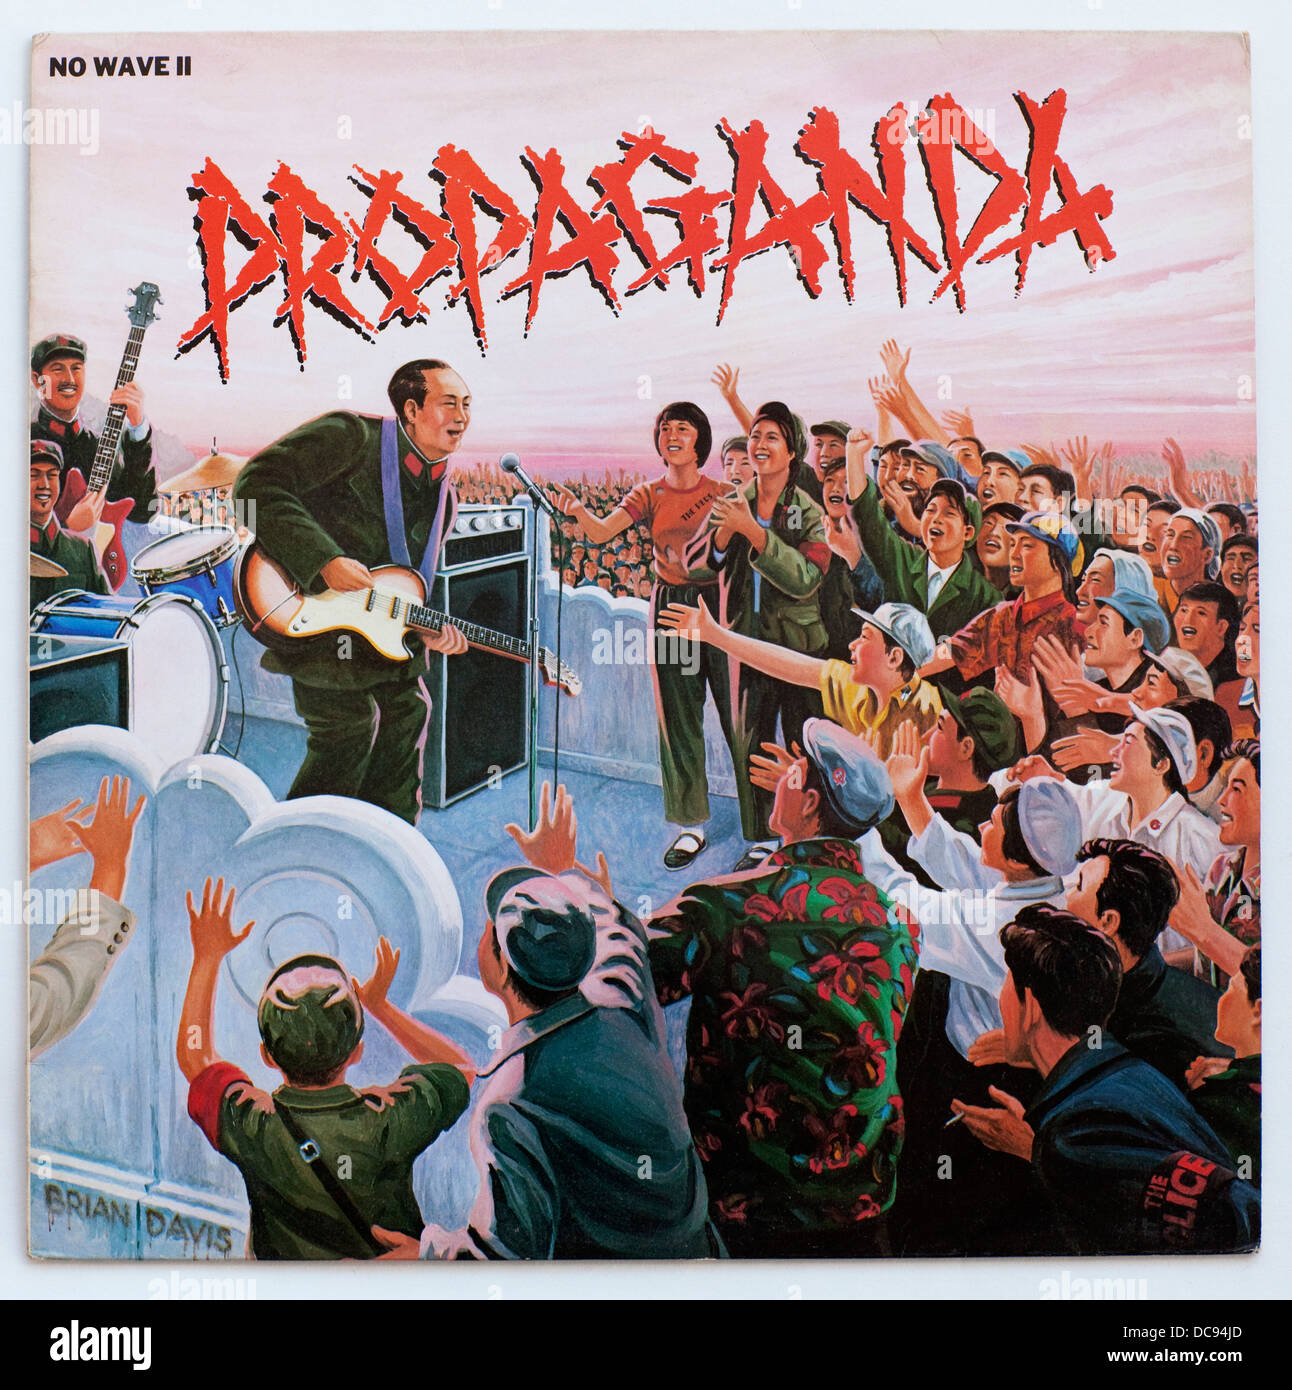 Various Artists-Propaganda (No wave II), 1979, New Wave compilation on A&M Records (Cover art by Brian Davis) - Stock Image